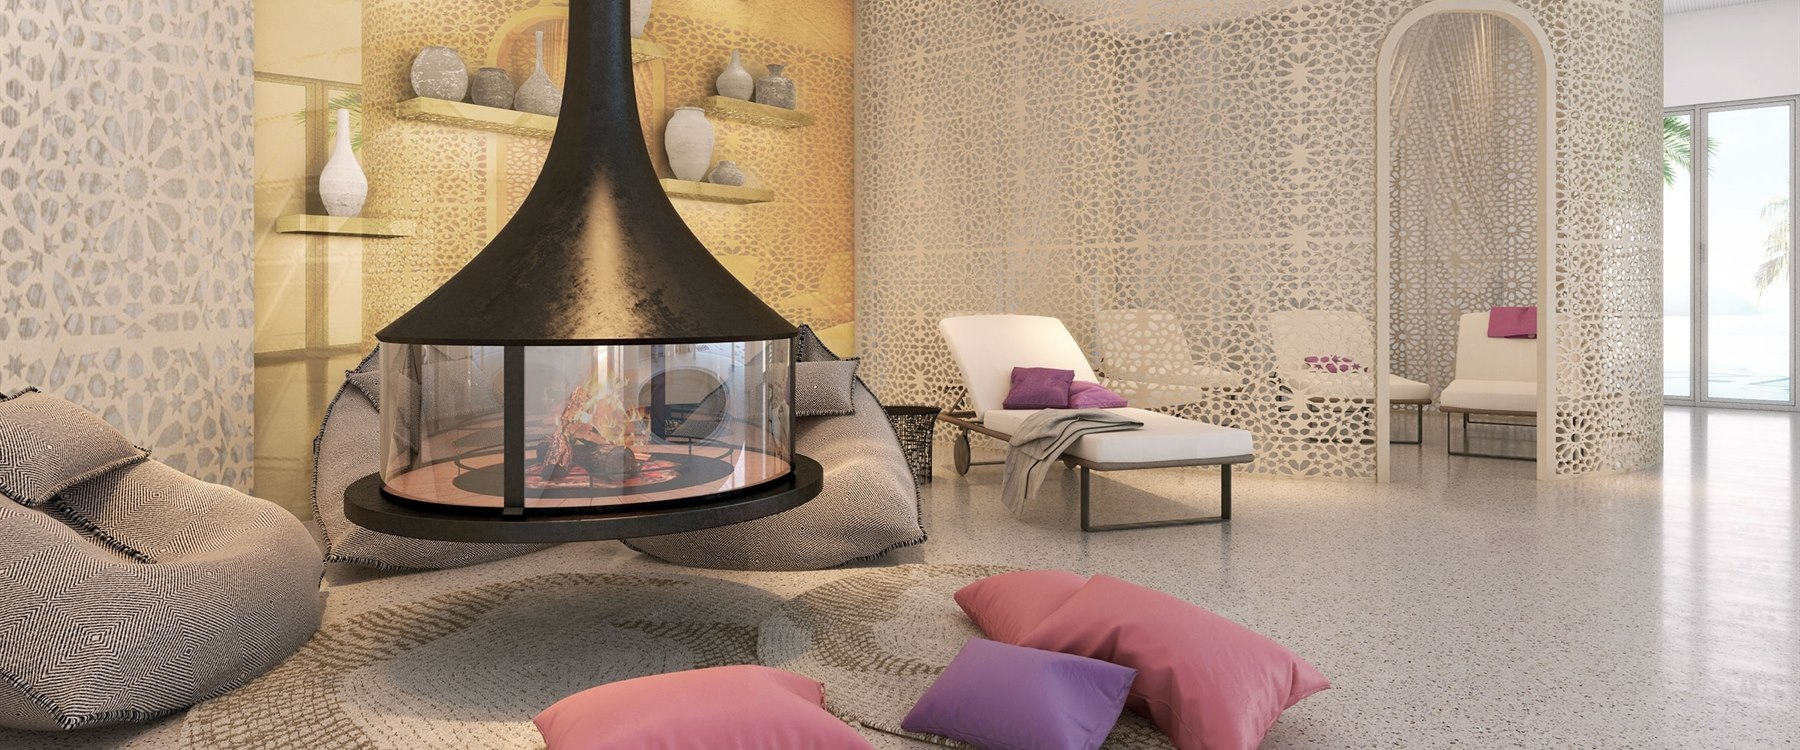 Spa Relaxation Room at Seven Pines Resort, Ibiza